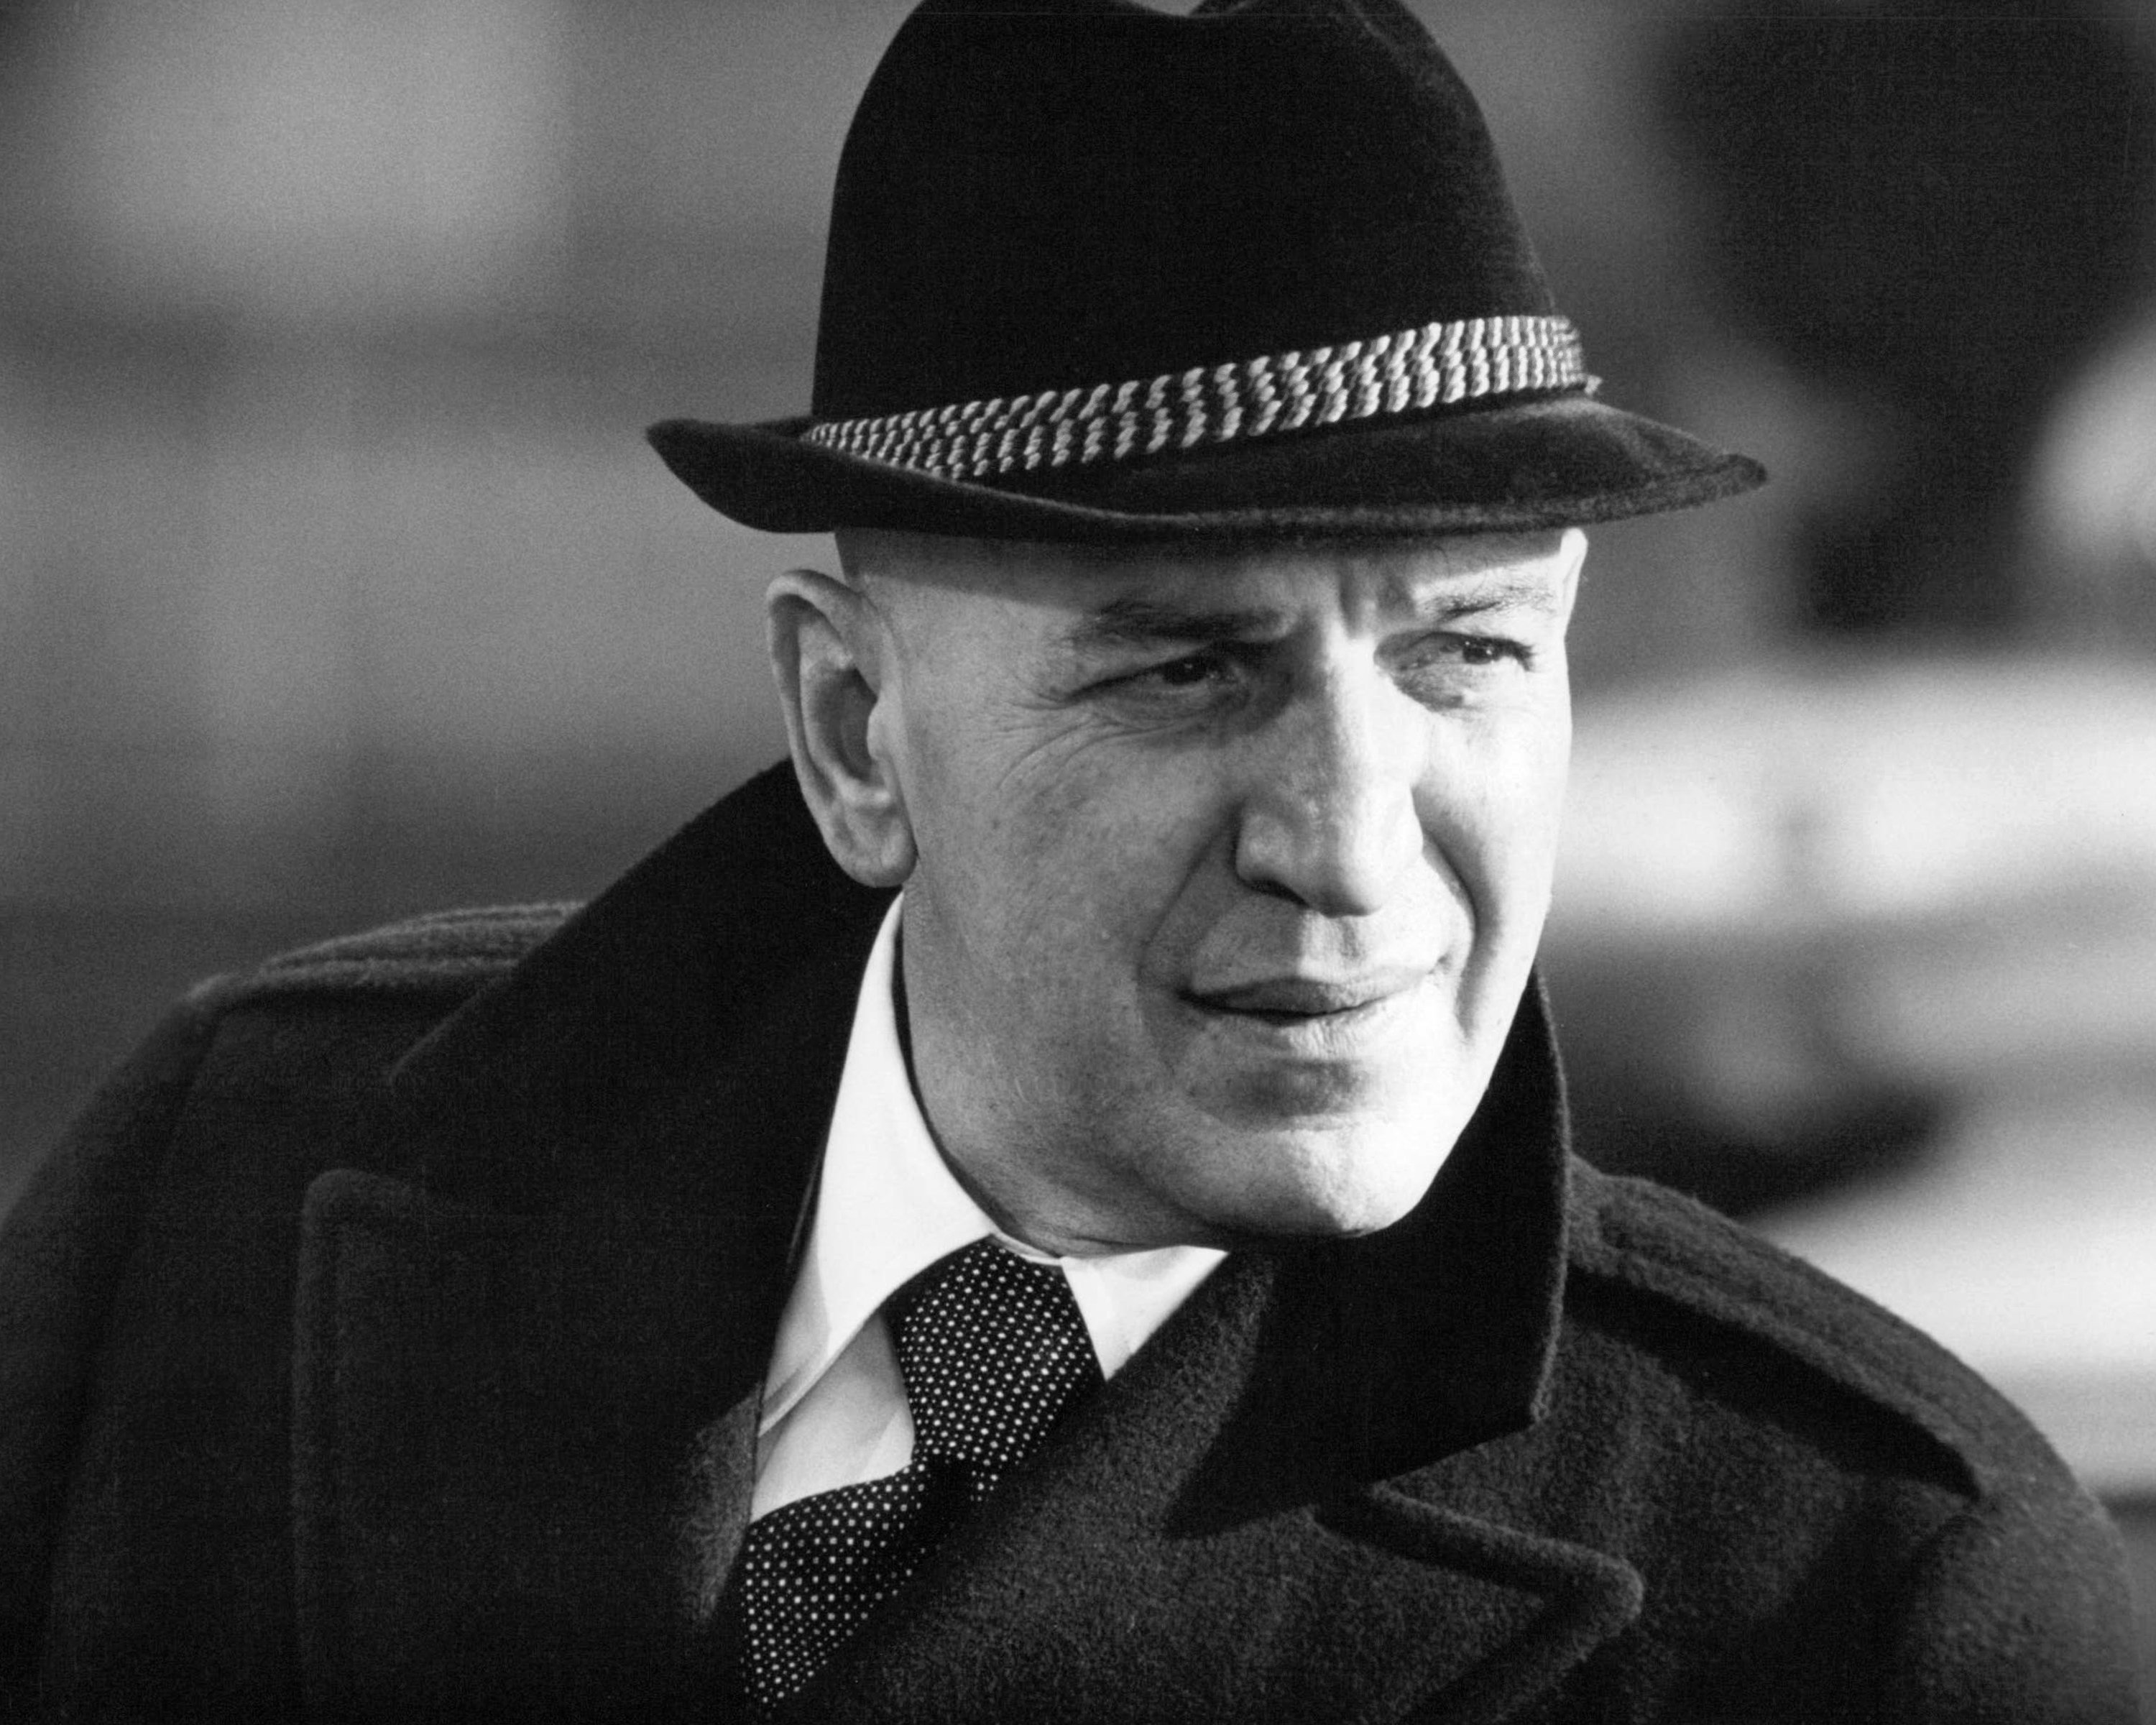 American actor Telly Savalas (1922 - 1994) as Detective Lieutenant Theo Kojak in the TV crime series 'Kojak', circa 1975 | Photo: Getty Images